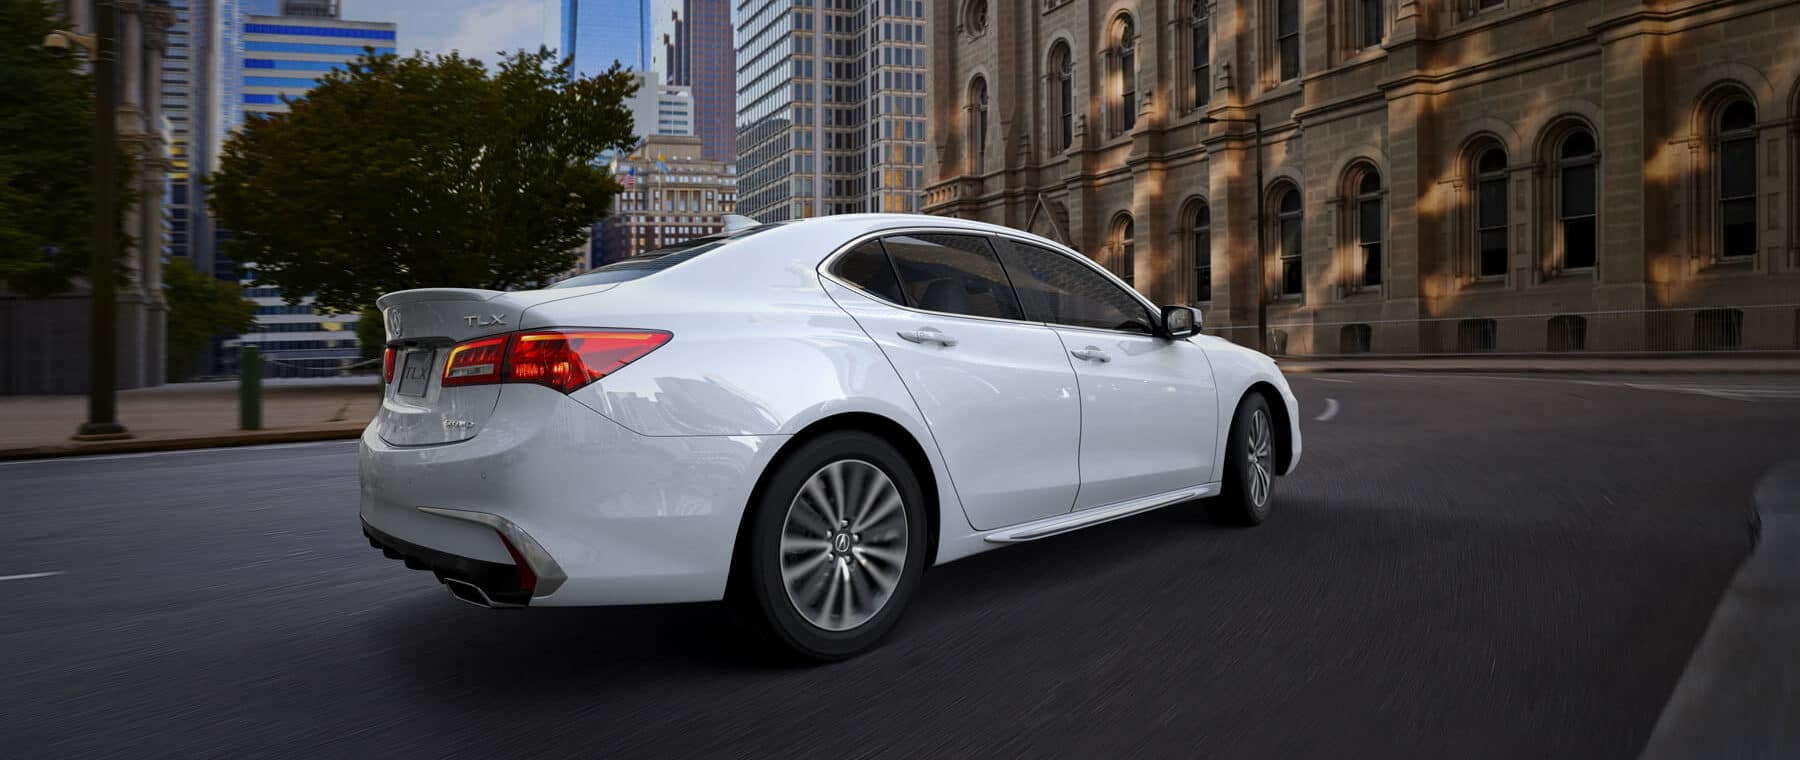 Acura Dealership Mn >> Twin Cities Acura Dealers Acura Dealers Serving Minneapolis St Paul